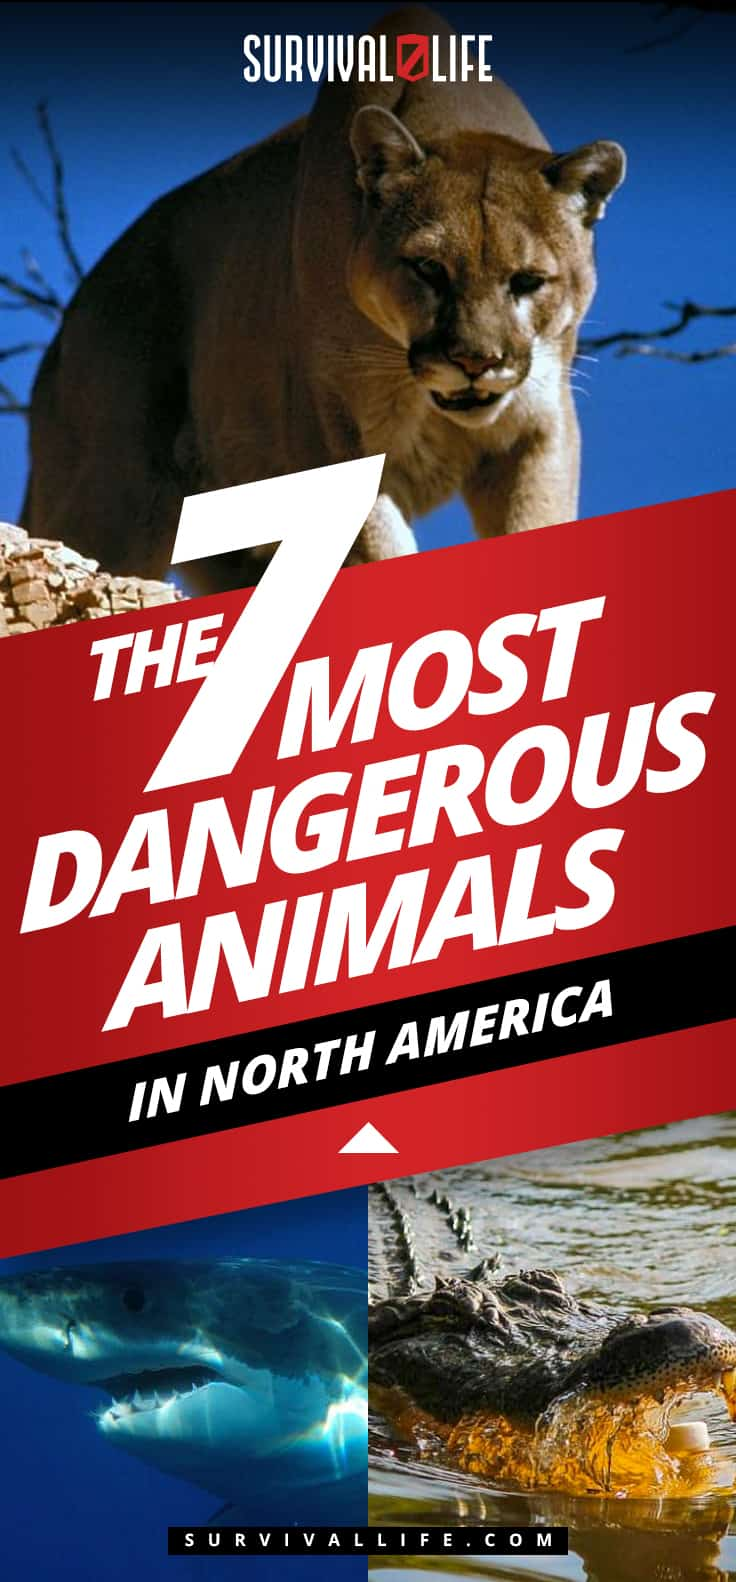 The 7 Most Dangerous Animals In North America